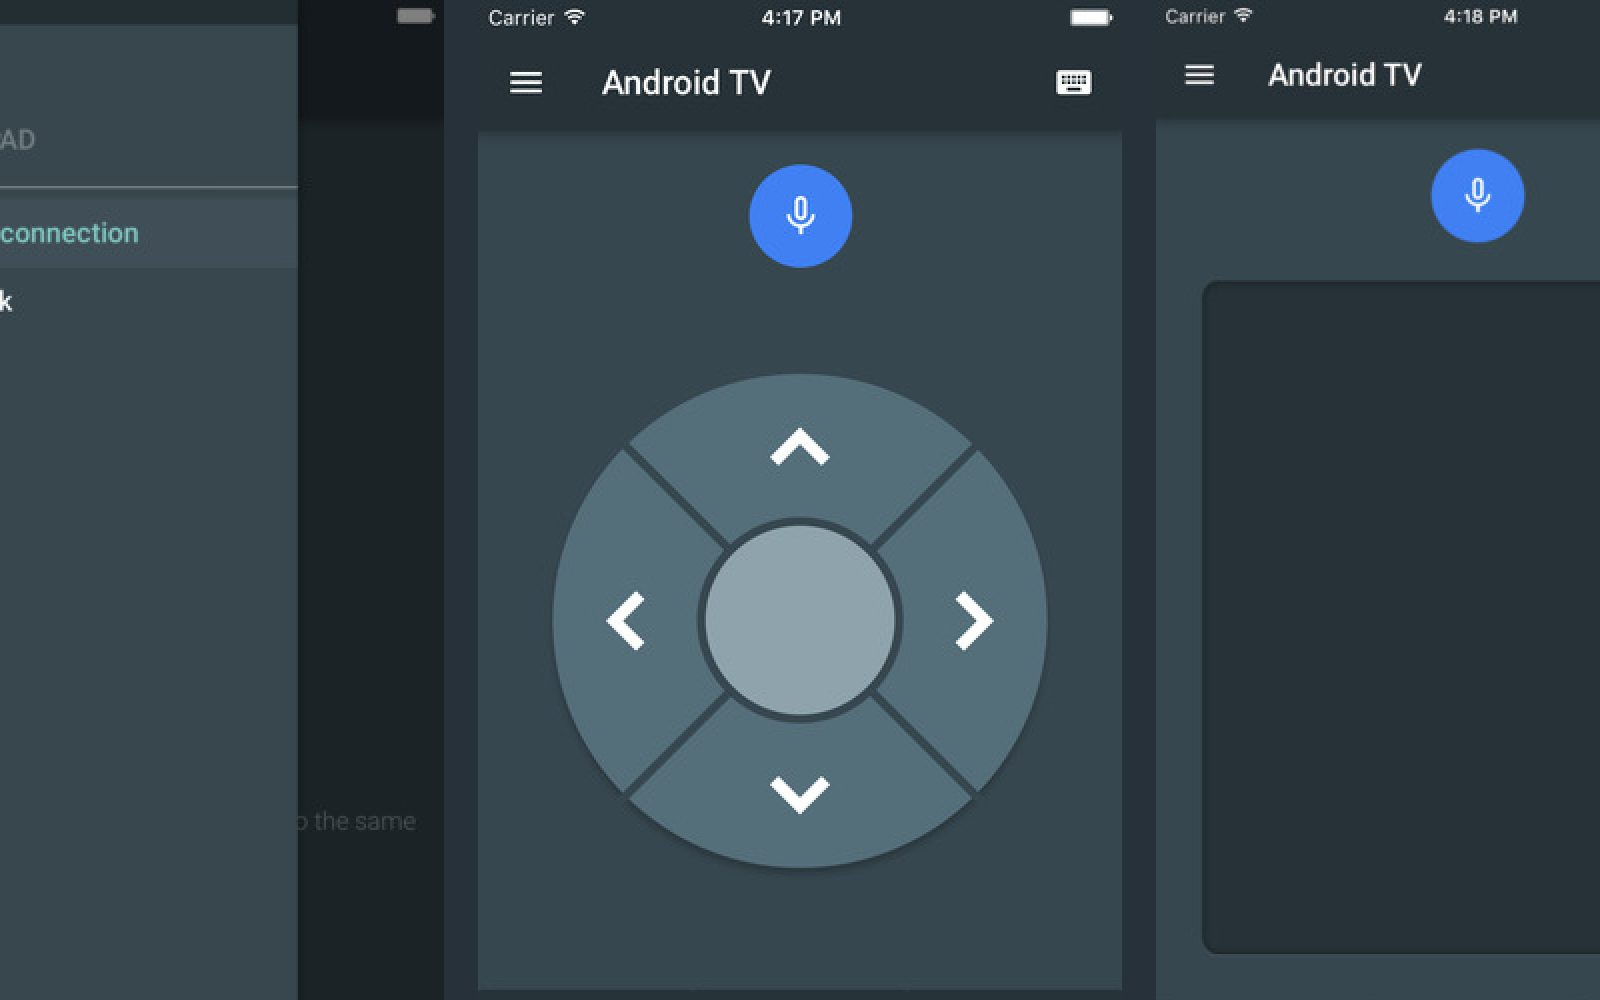 Google has launched an Android TV remote control app for iPhone